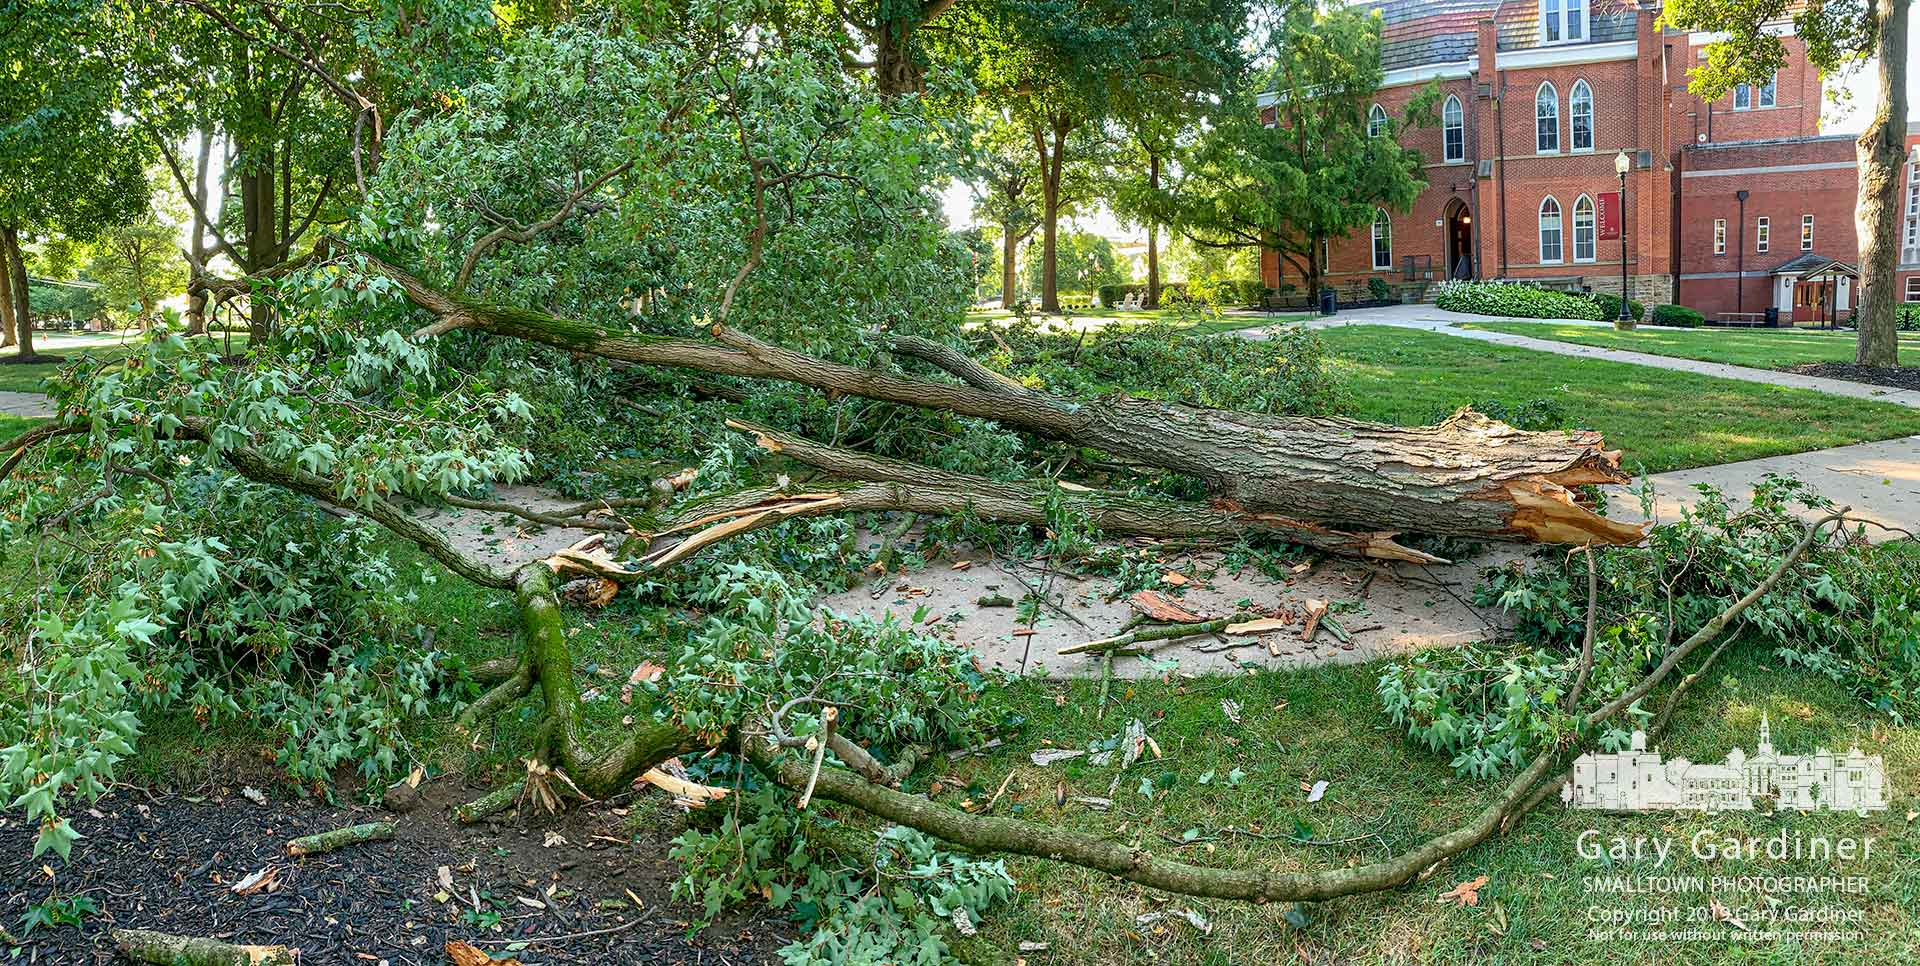 A large sectional trunk of a mature tree adjacent to Towers Hall on the Otterbein University campus lies across a sidewalk where it fell during an overnight storm. My Final Photo for Aug. 9, 2019.